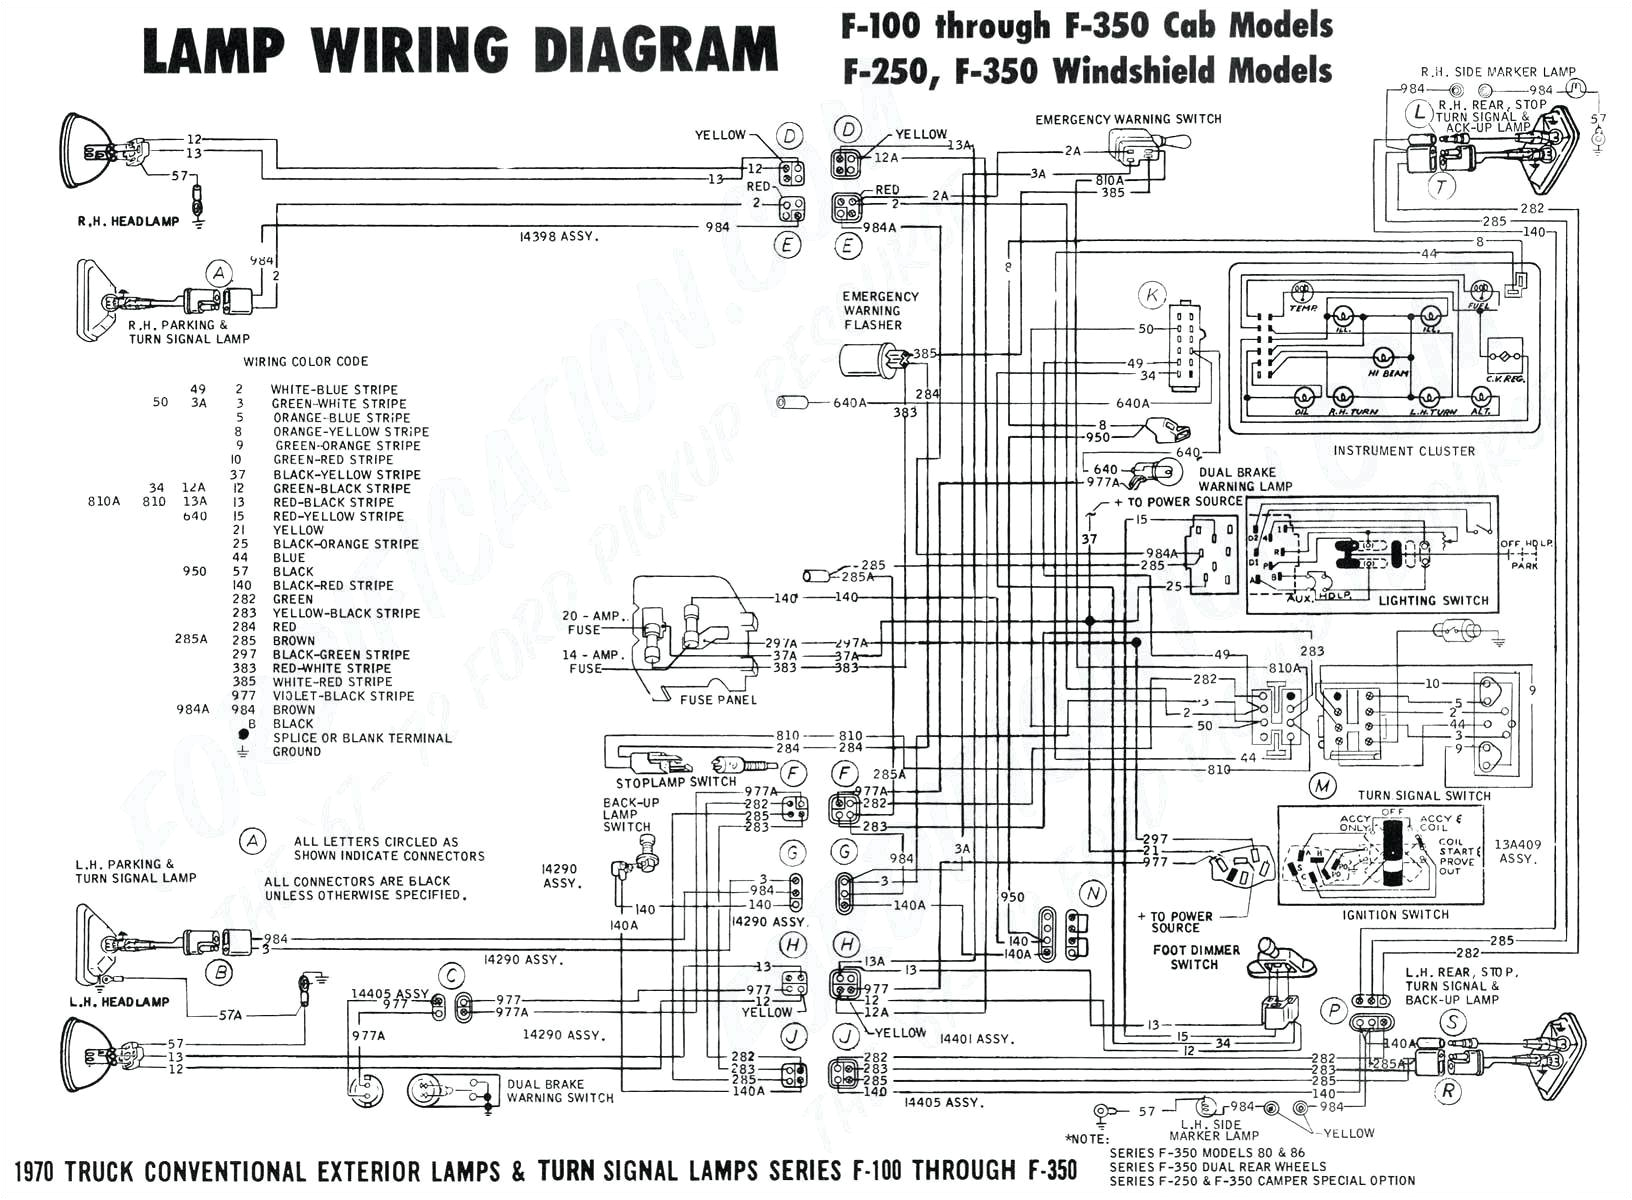 dodge engine compartment wiring harness wiring diagram toolbox 2000 dodge neon ignition wiring diagram dodge neon ignition wiring